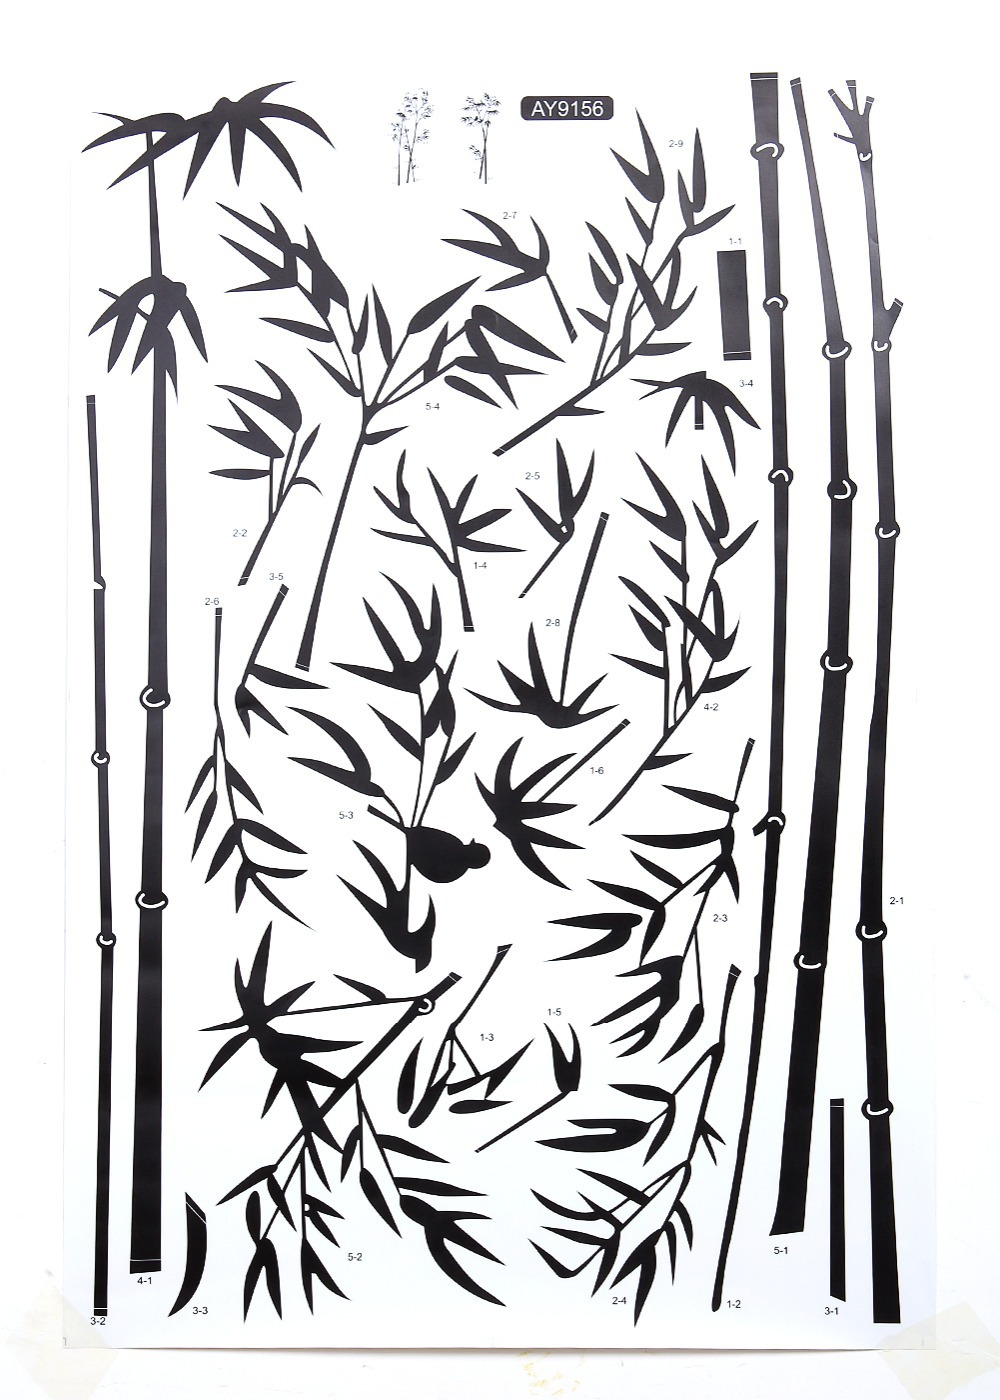 Bamboo wall decals murals images home wall decoration ideas ink painting bamboo wall decor diy removable art vinyl black ink painting bamboo wall decor diy amipublicfo Gallery